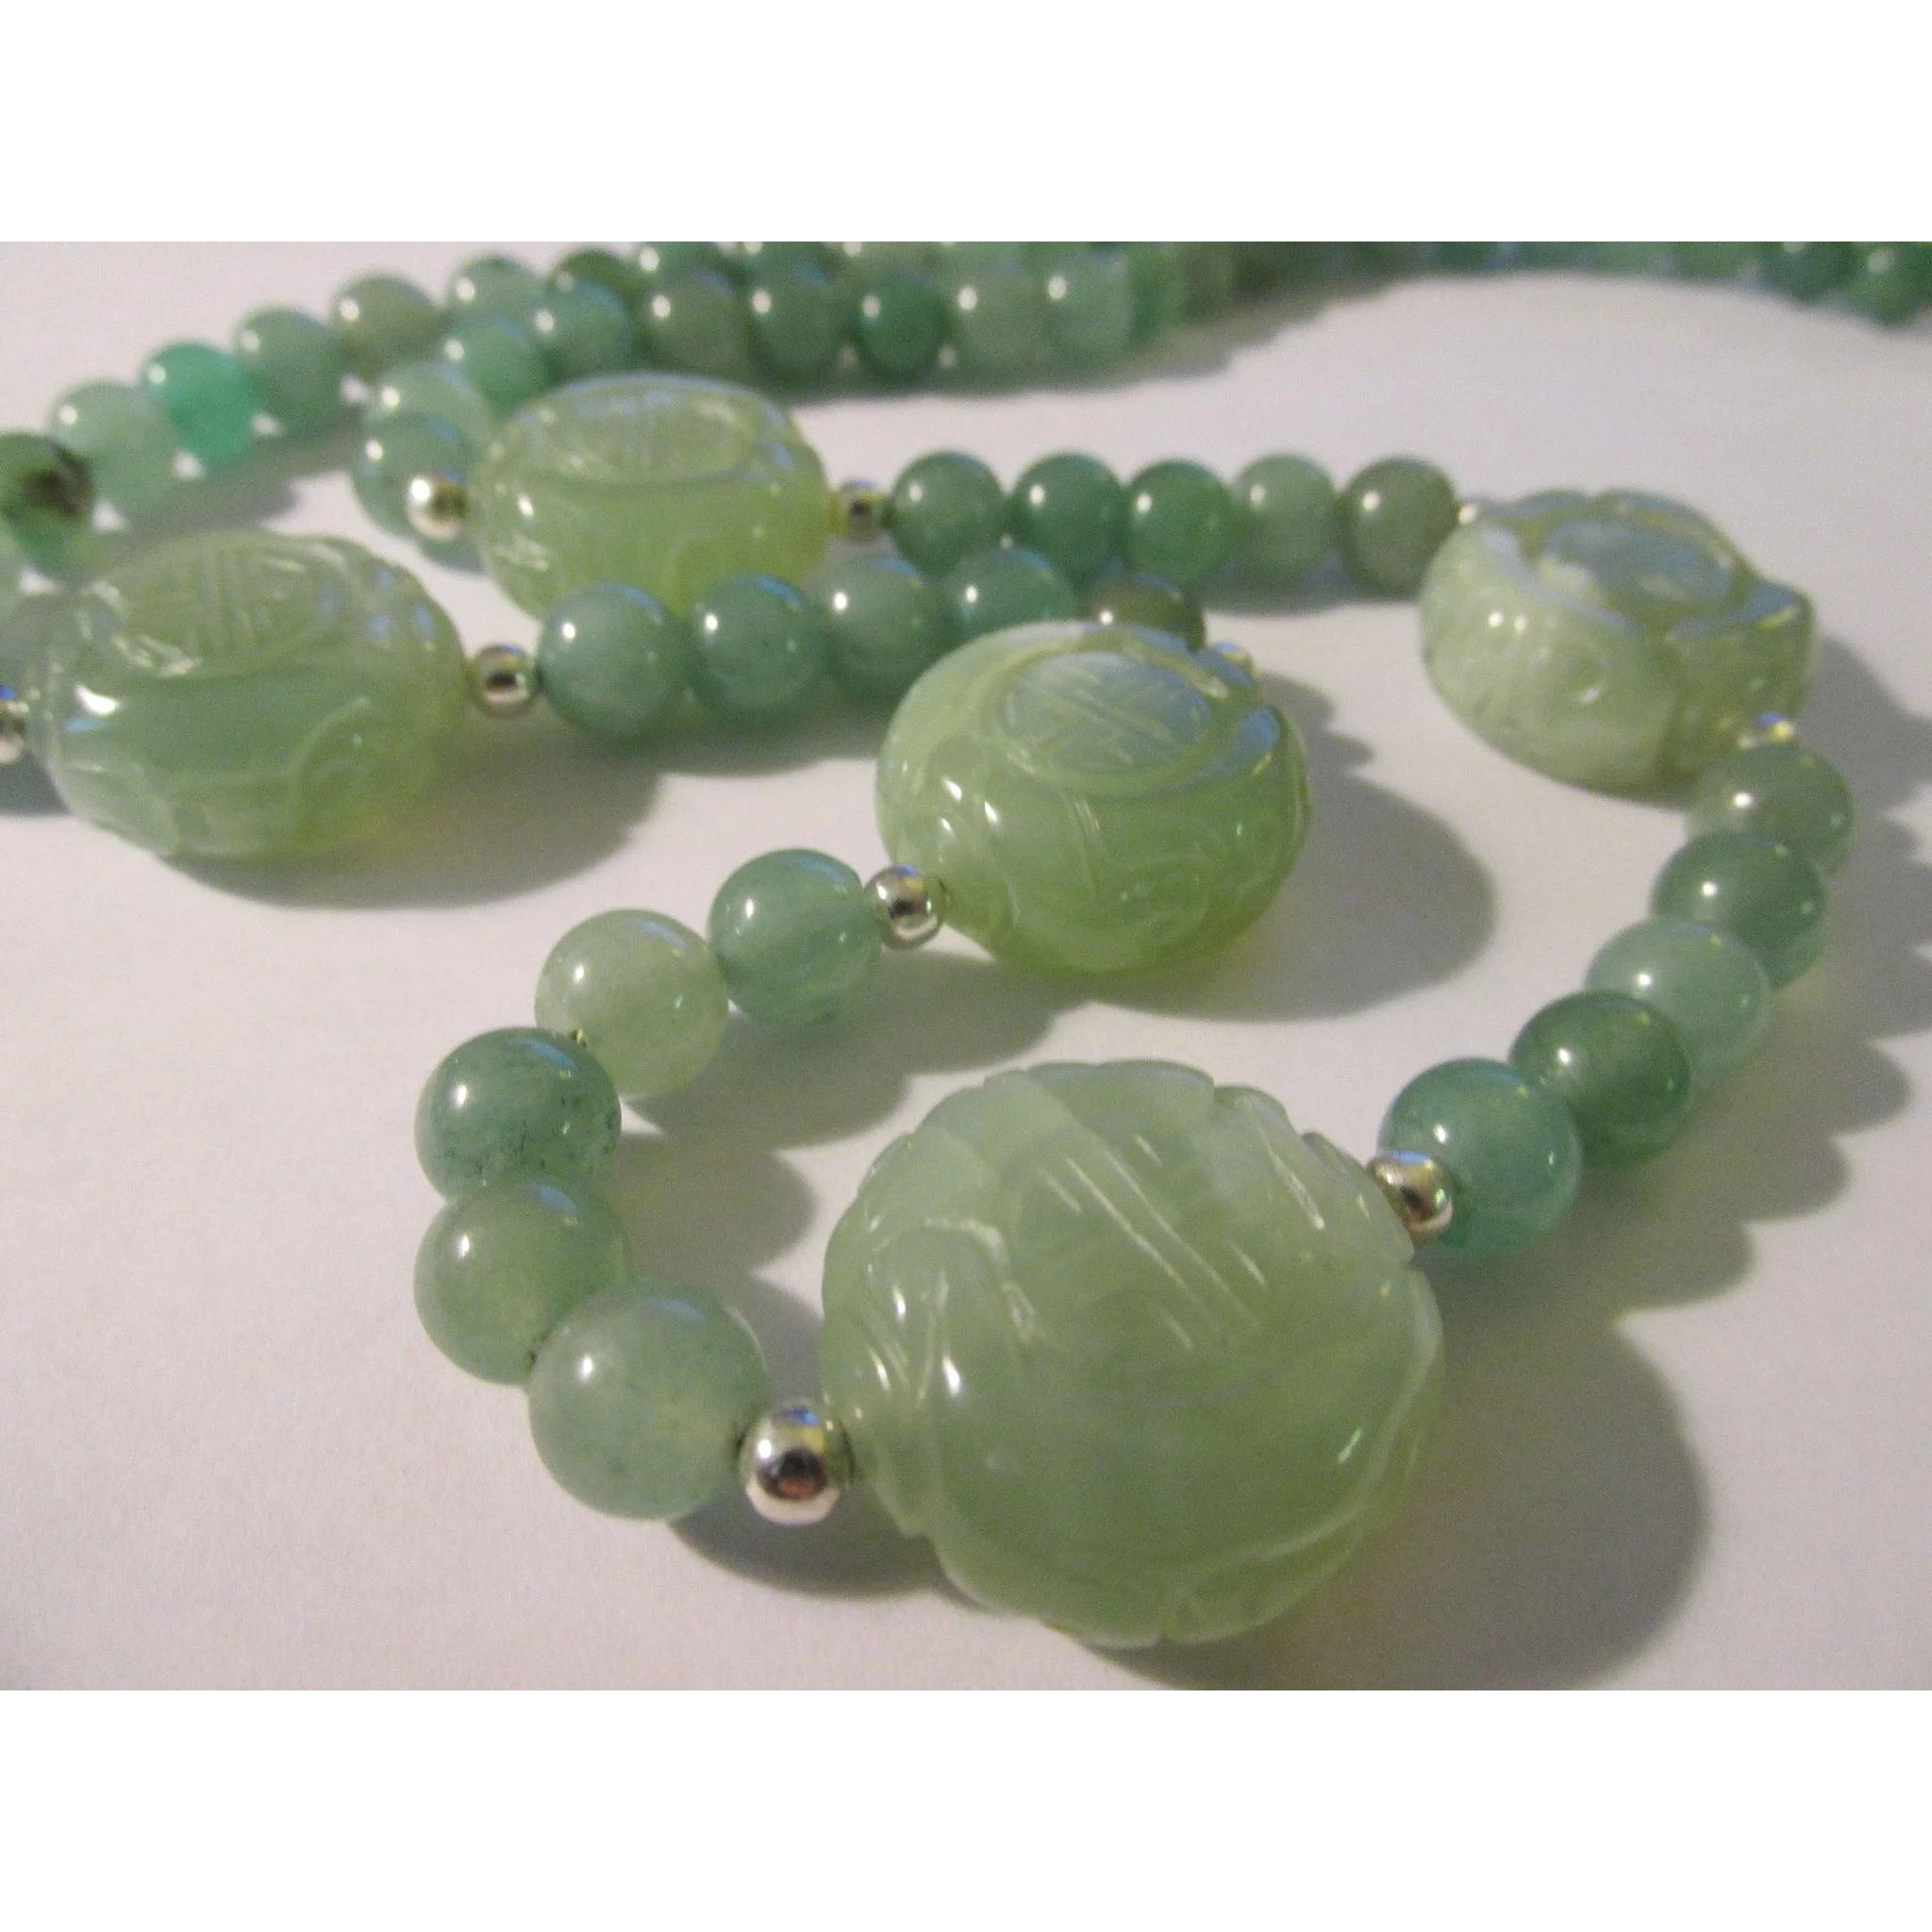 nyr green necklace christie jade mottled s polished pale a beads look bead long